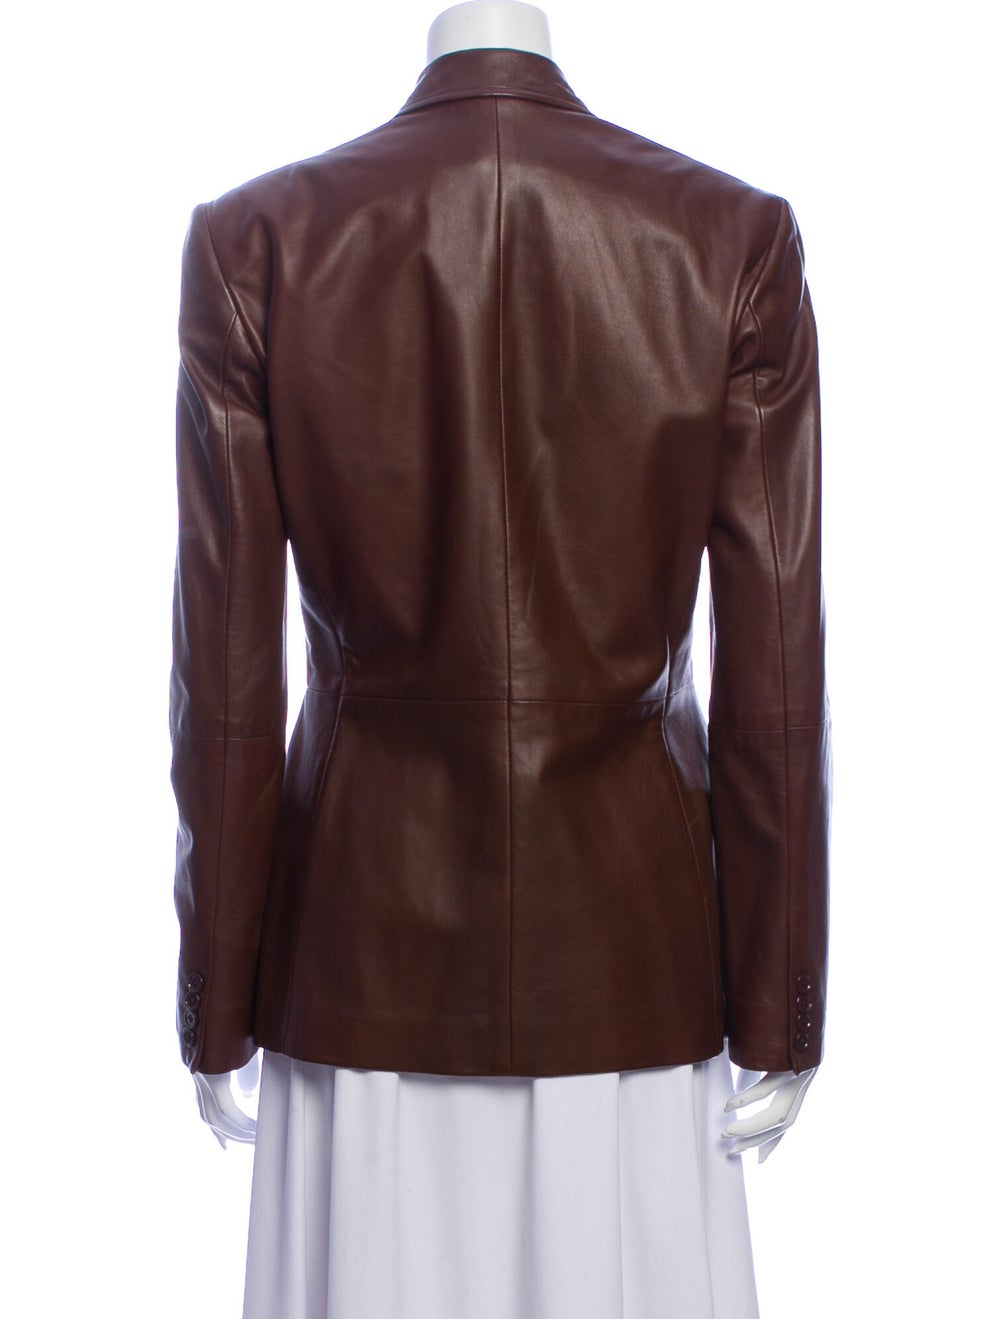 Ralph Lauren Black Label Vintage Leather Blazer B… - image 3